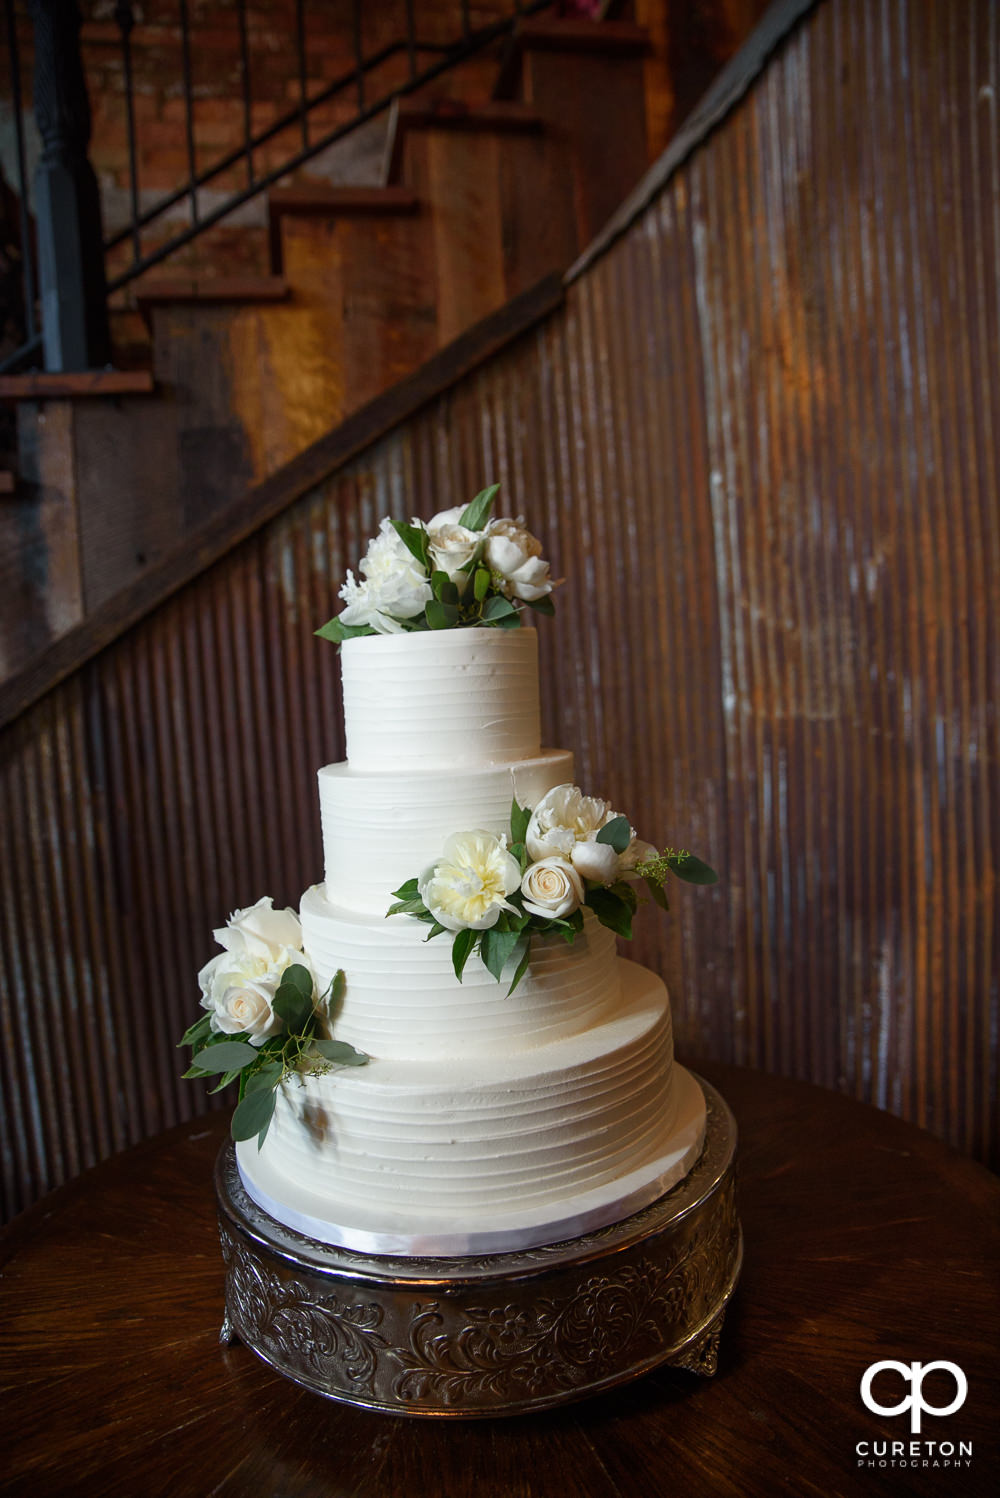 Wedding cake by Couture Cakes in Greenville.